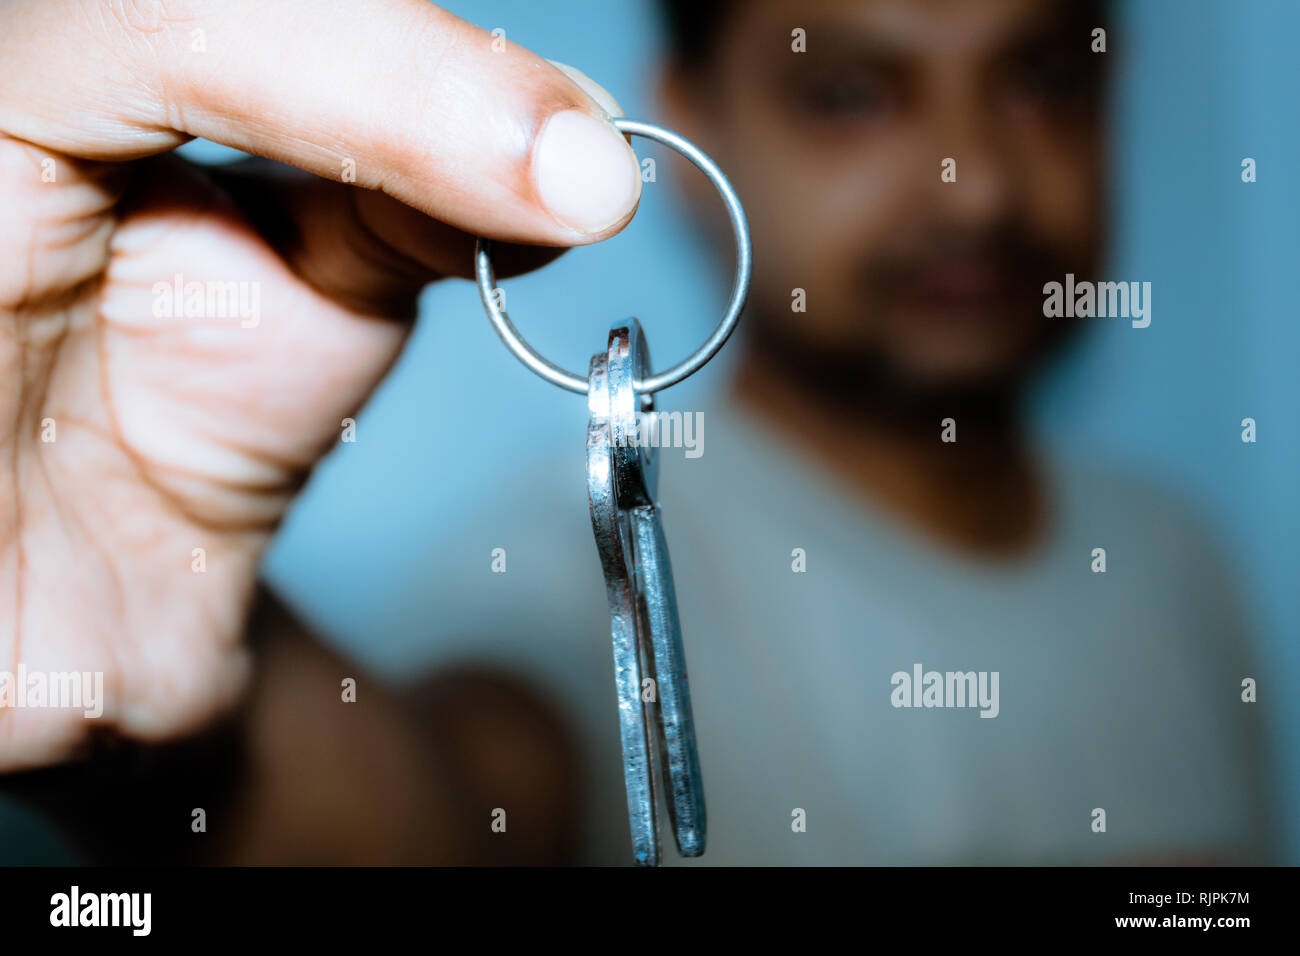 Business Men hand holding and showing a key ring. Real estate, moving in a new home or renting a property or Mortgage concept. Stock Photo